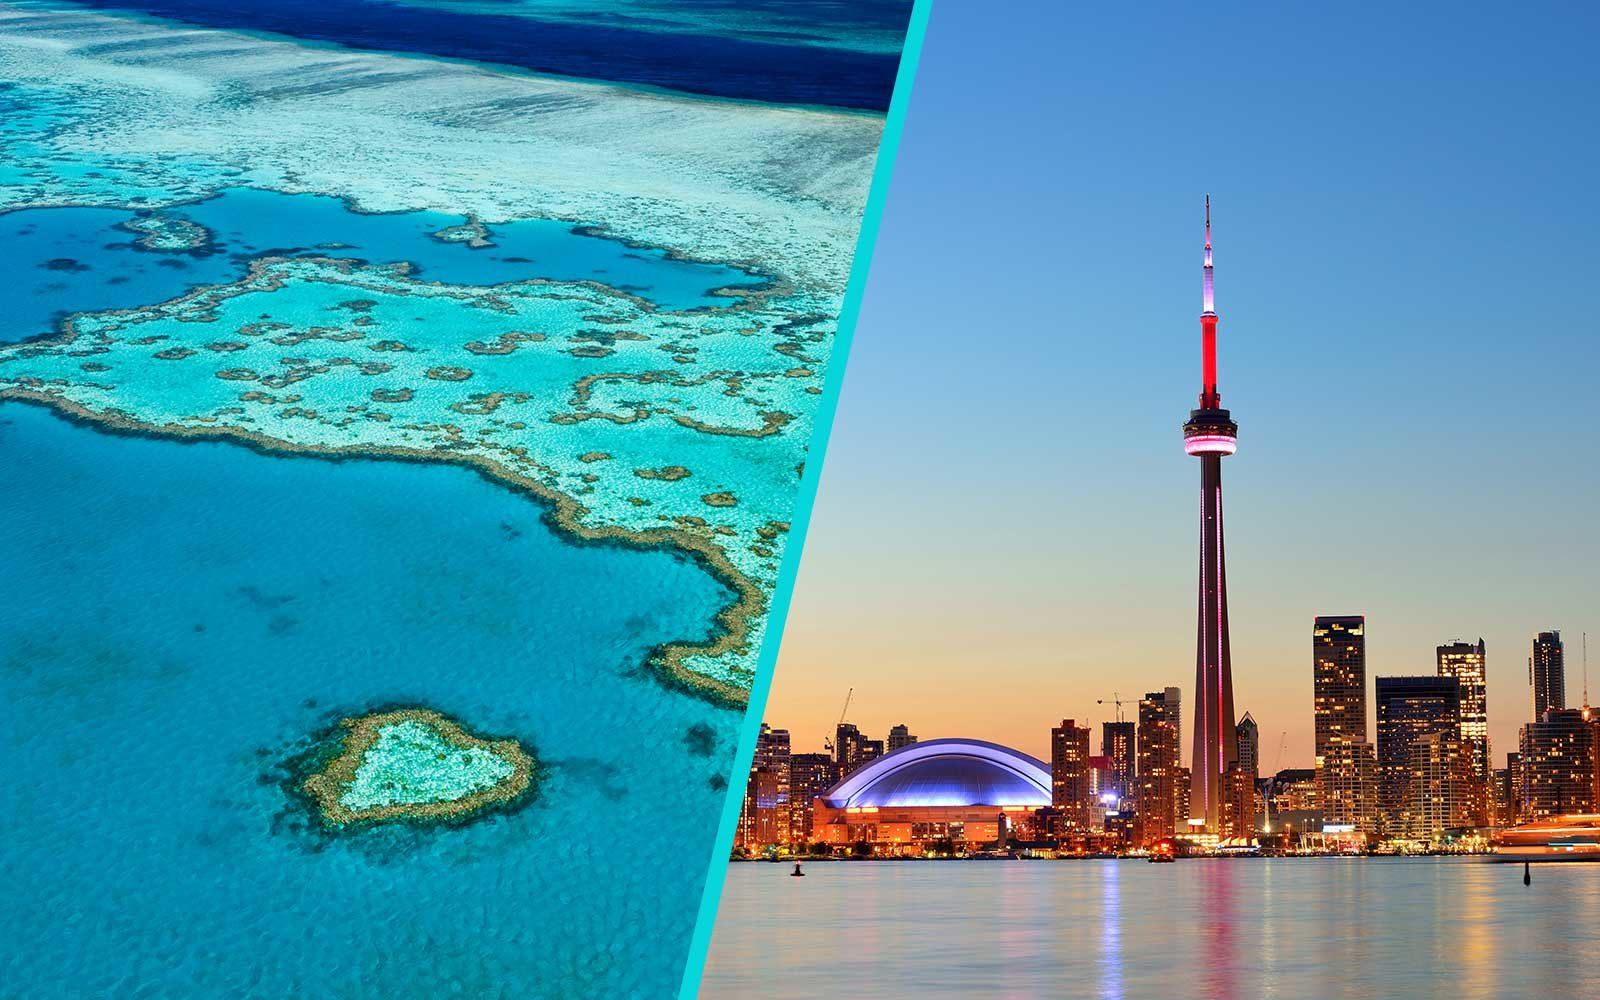 Trips for Pisces to the Great Barrier Reef and Toronto